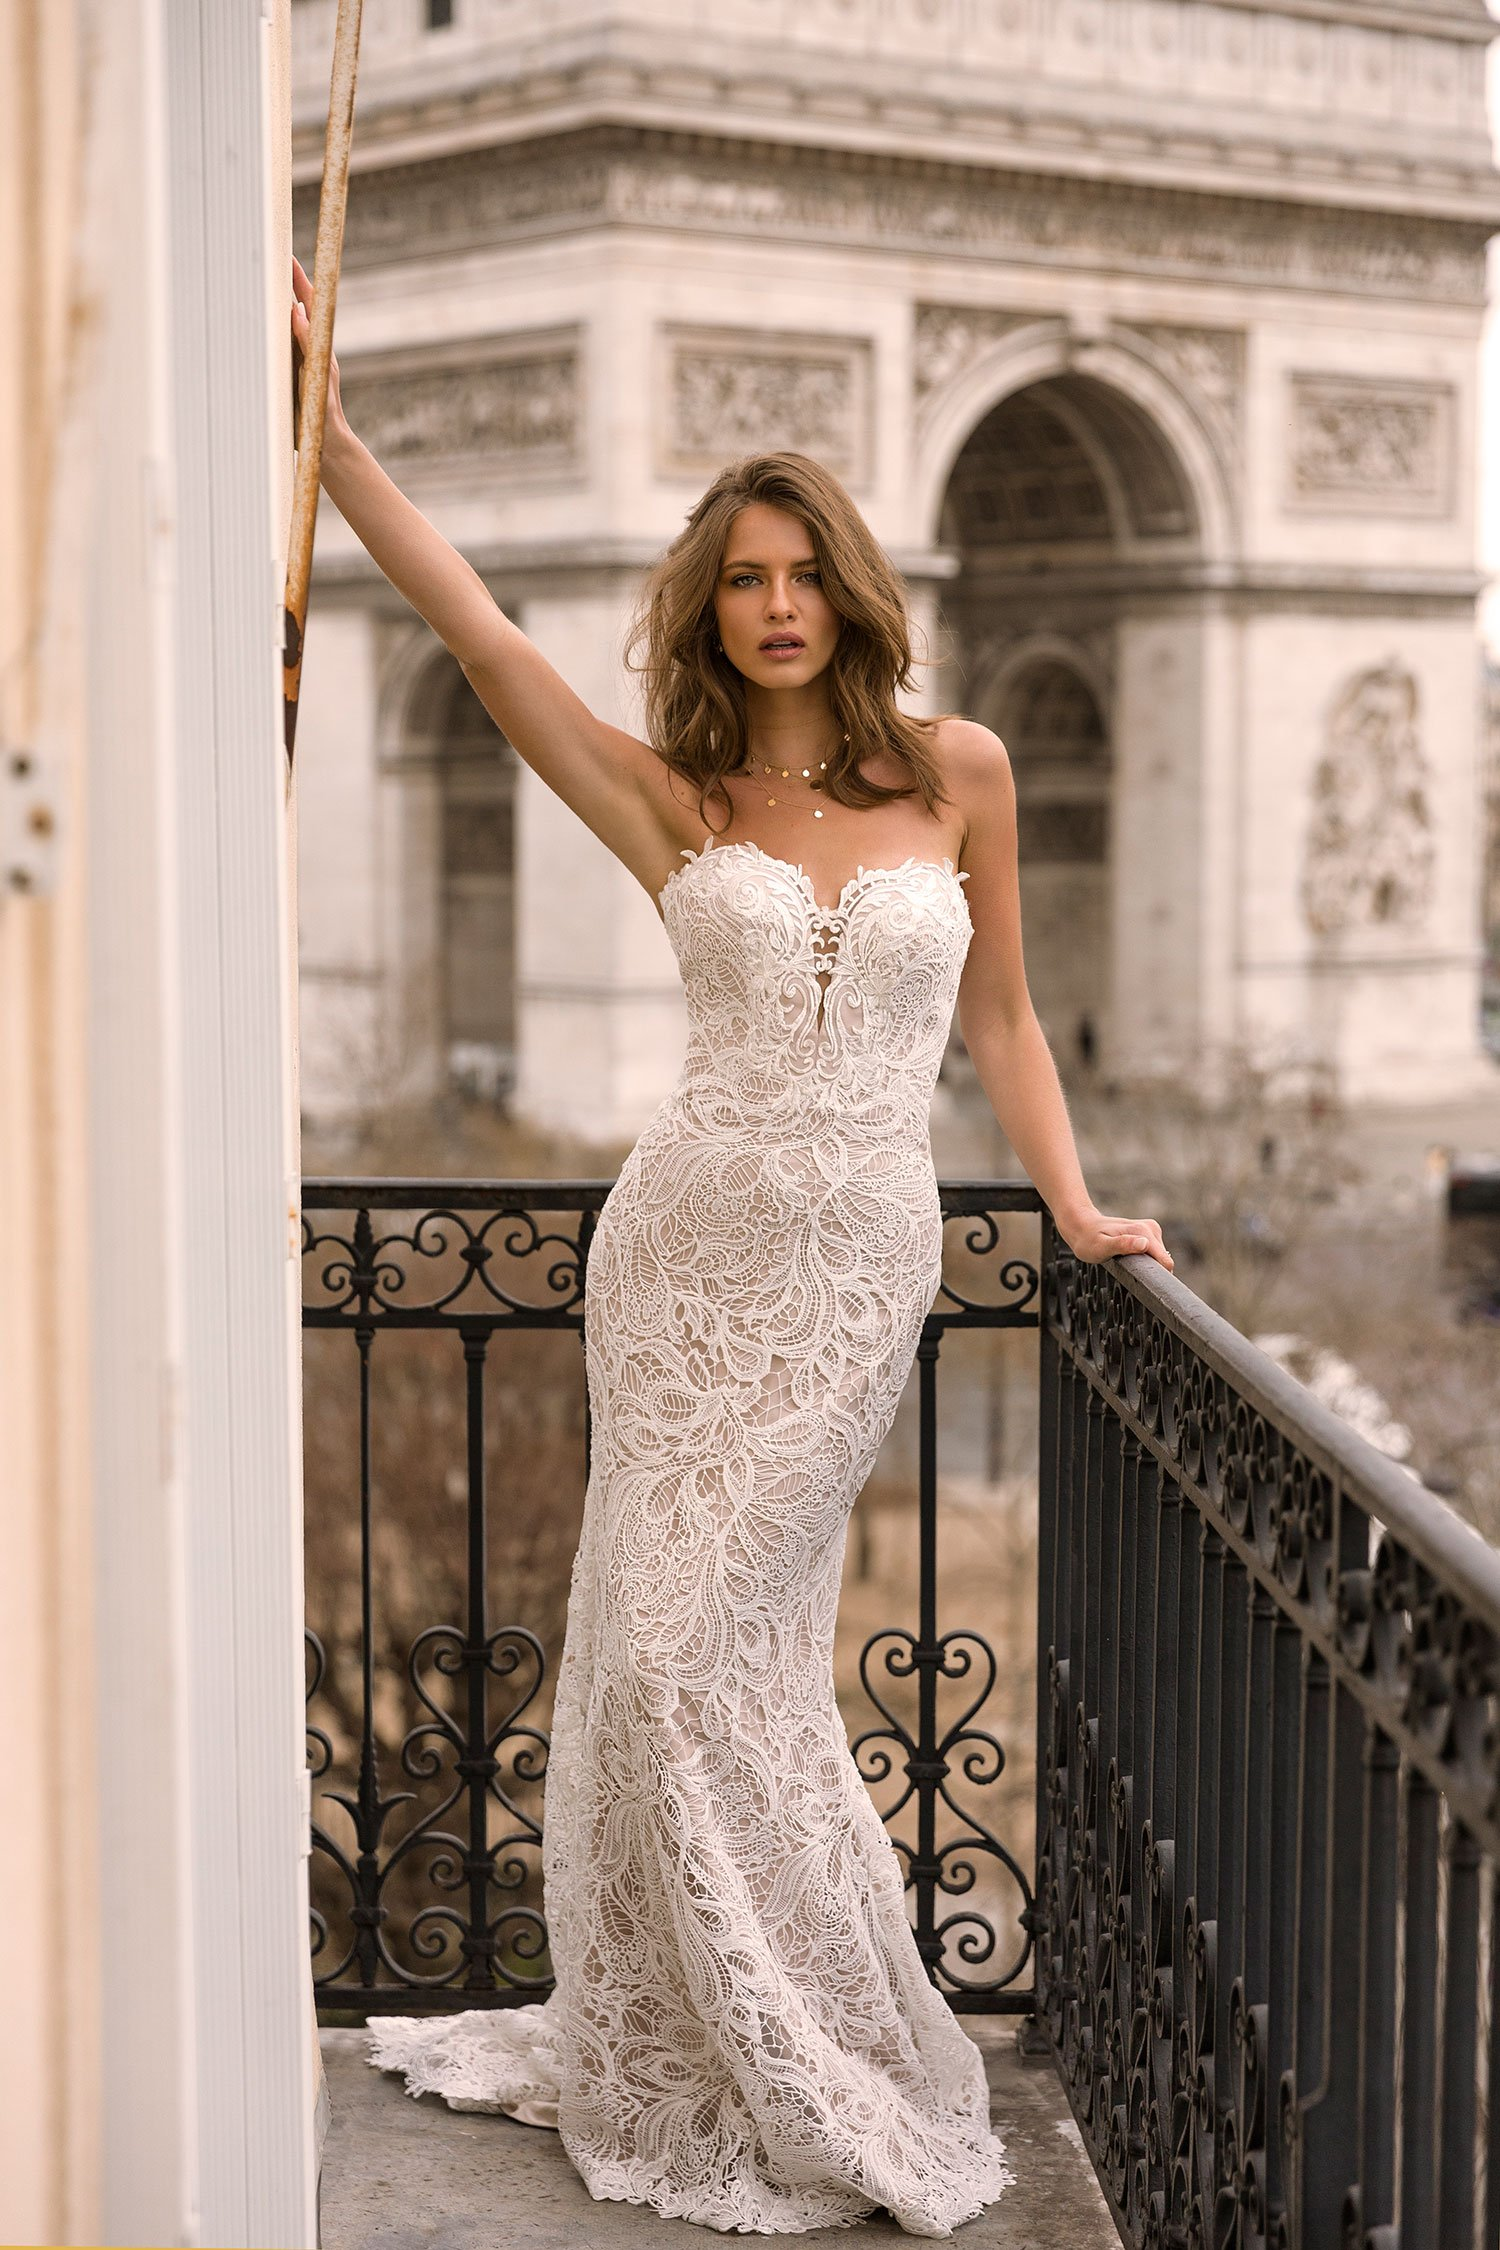 IVY-ML7419-FULL-HEAVY-LACE-GOWN-WITH-SWEETHEART-NECKLINE-ZIP-UP-BACK-AND-DETACHABLE-OFF-SHOULDER-LACE-STRAPS-WEDDING-DRESS-MADI-LANE-BRIDAL4